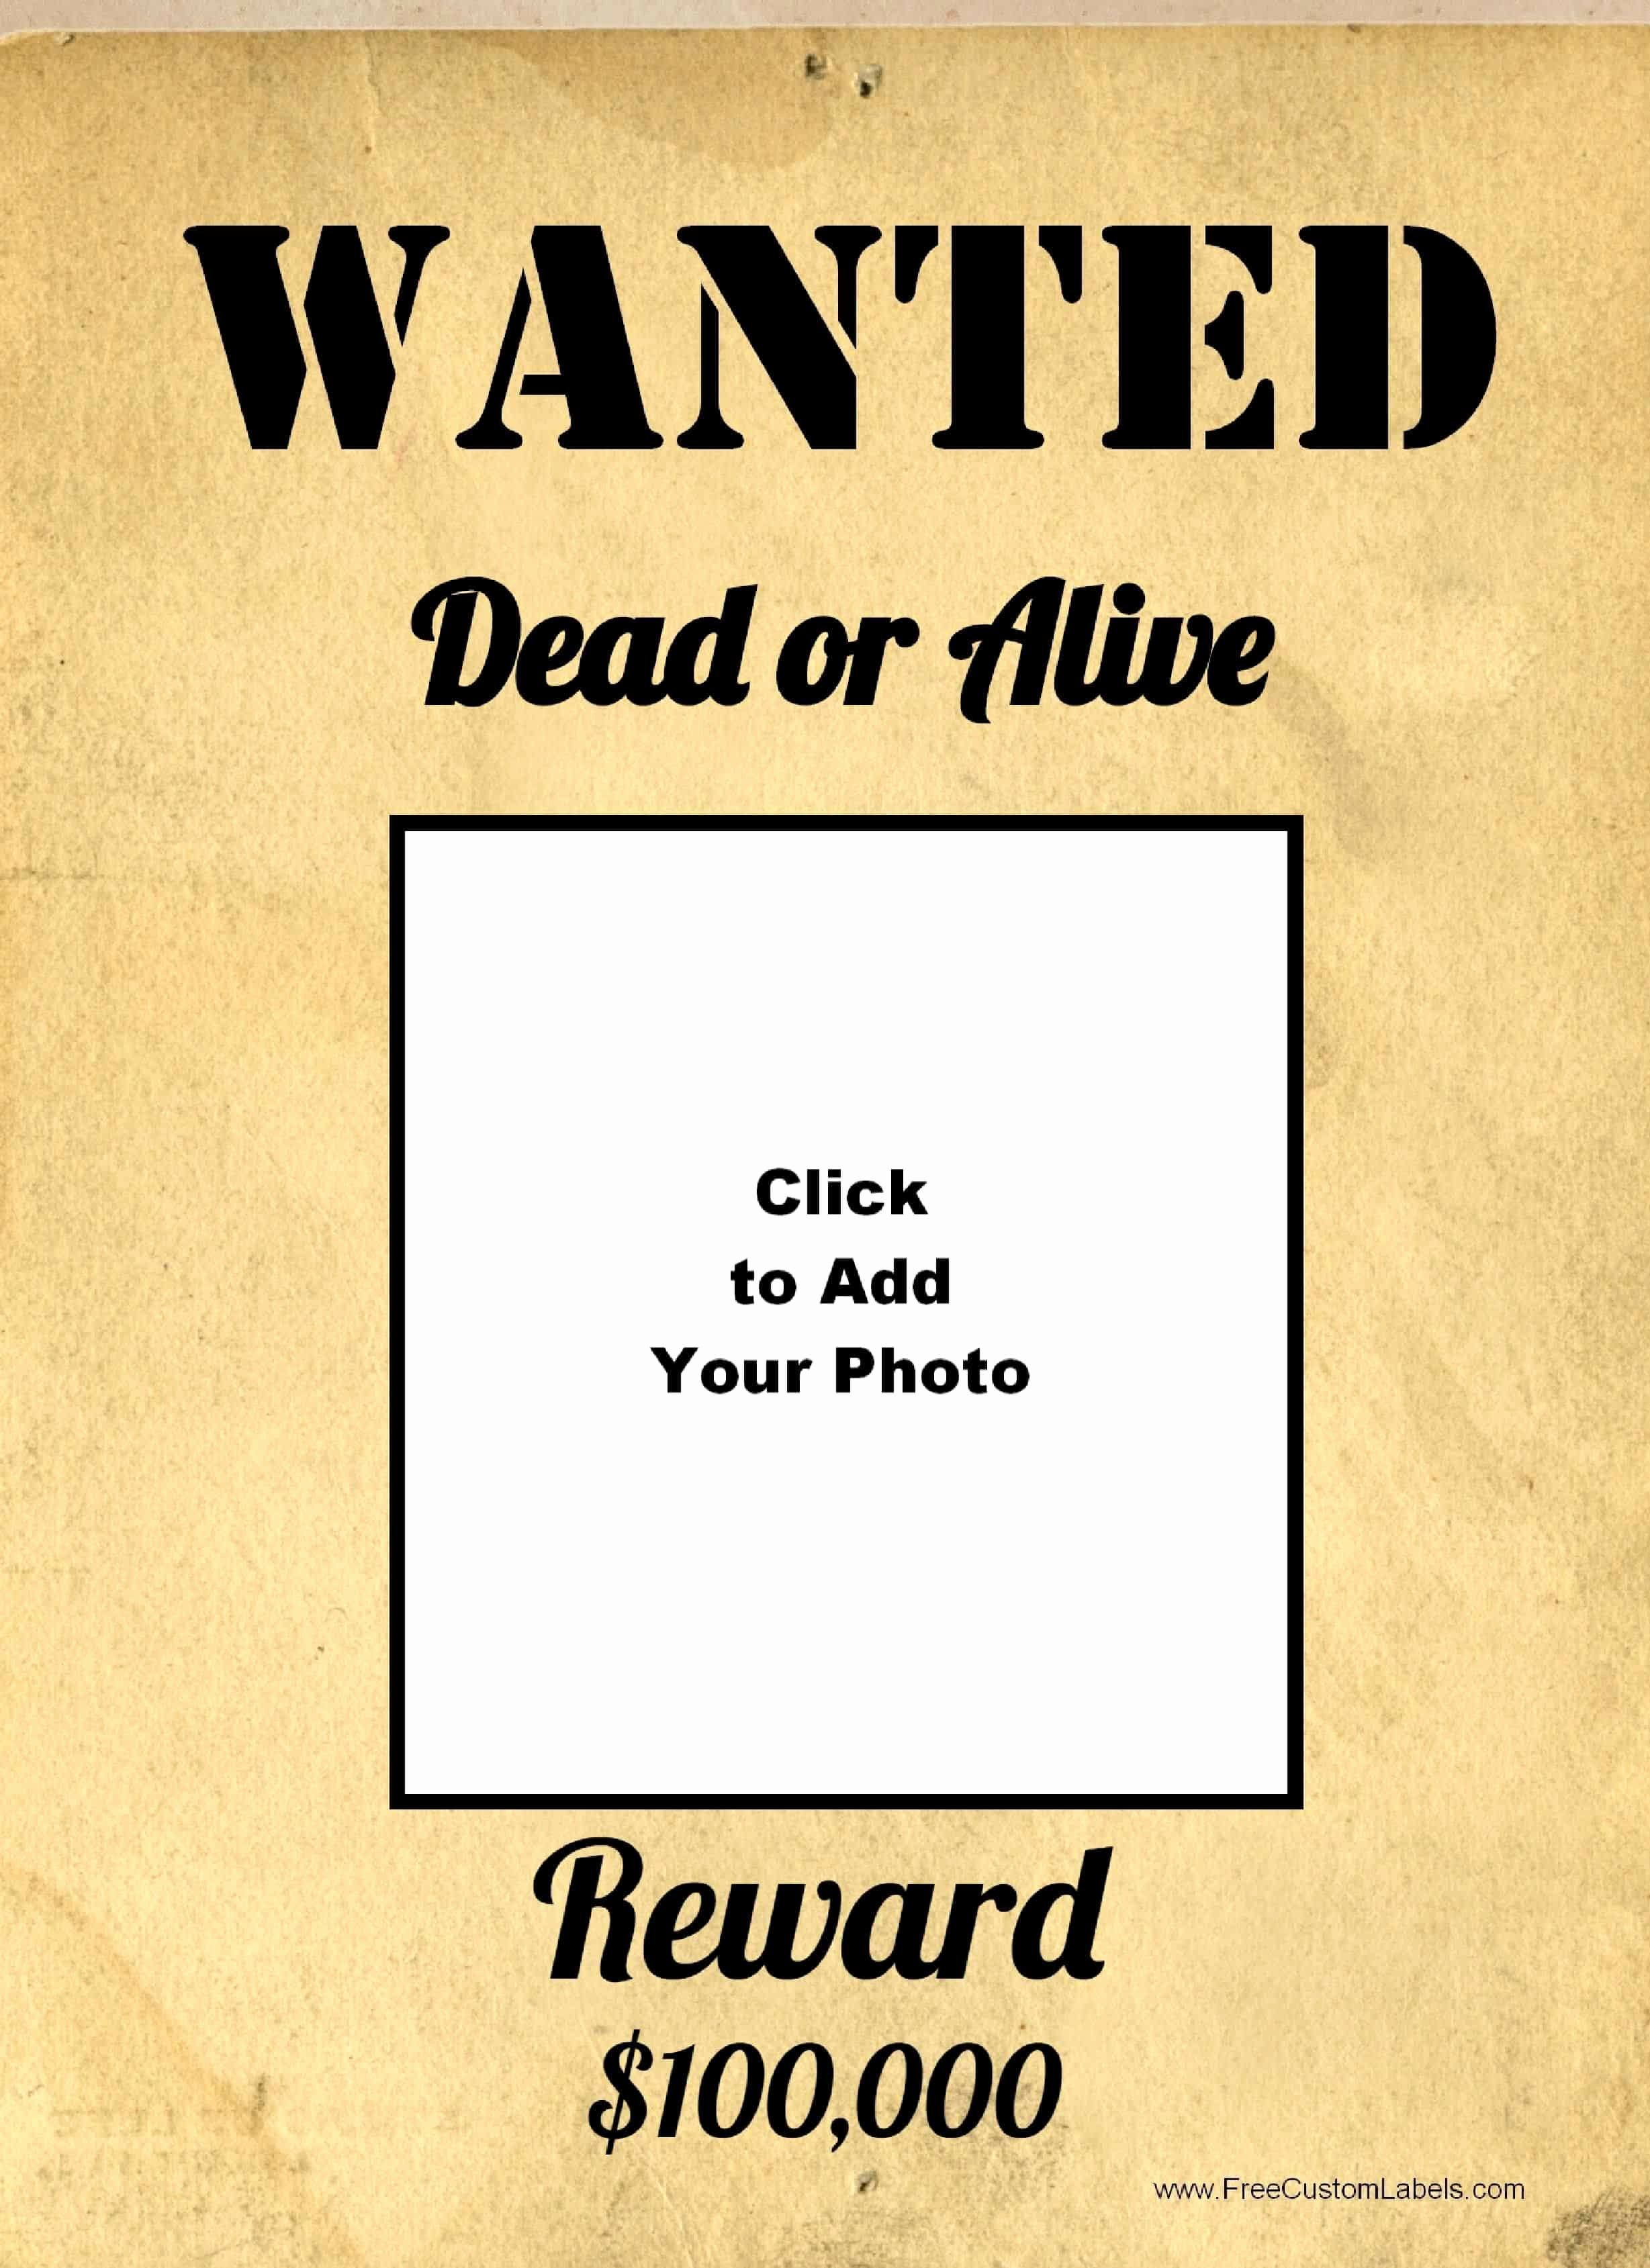 Wanted Poster Template Pdf Awesome Free Wanted Poster Maker